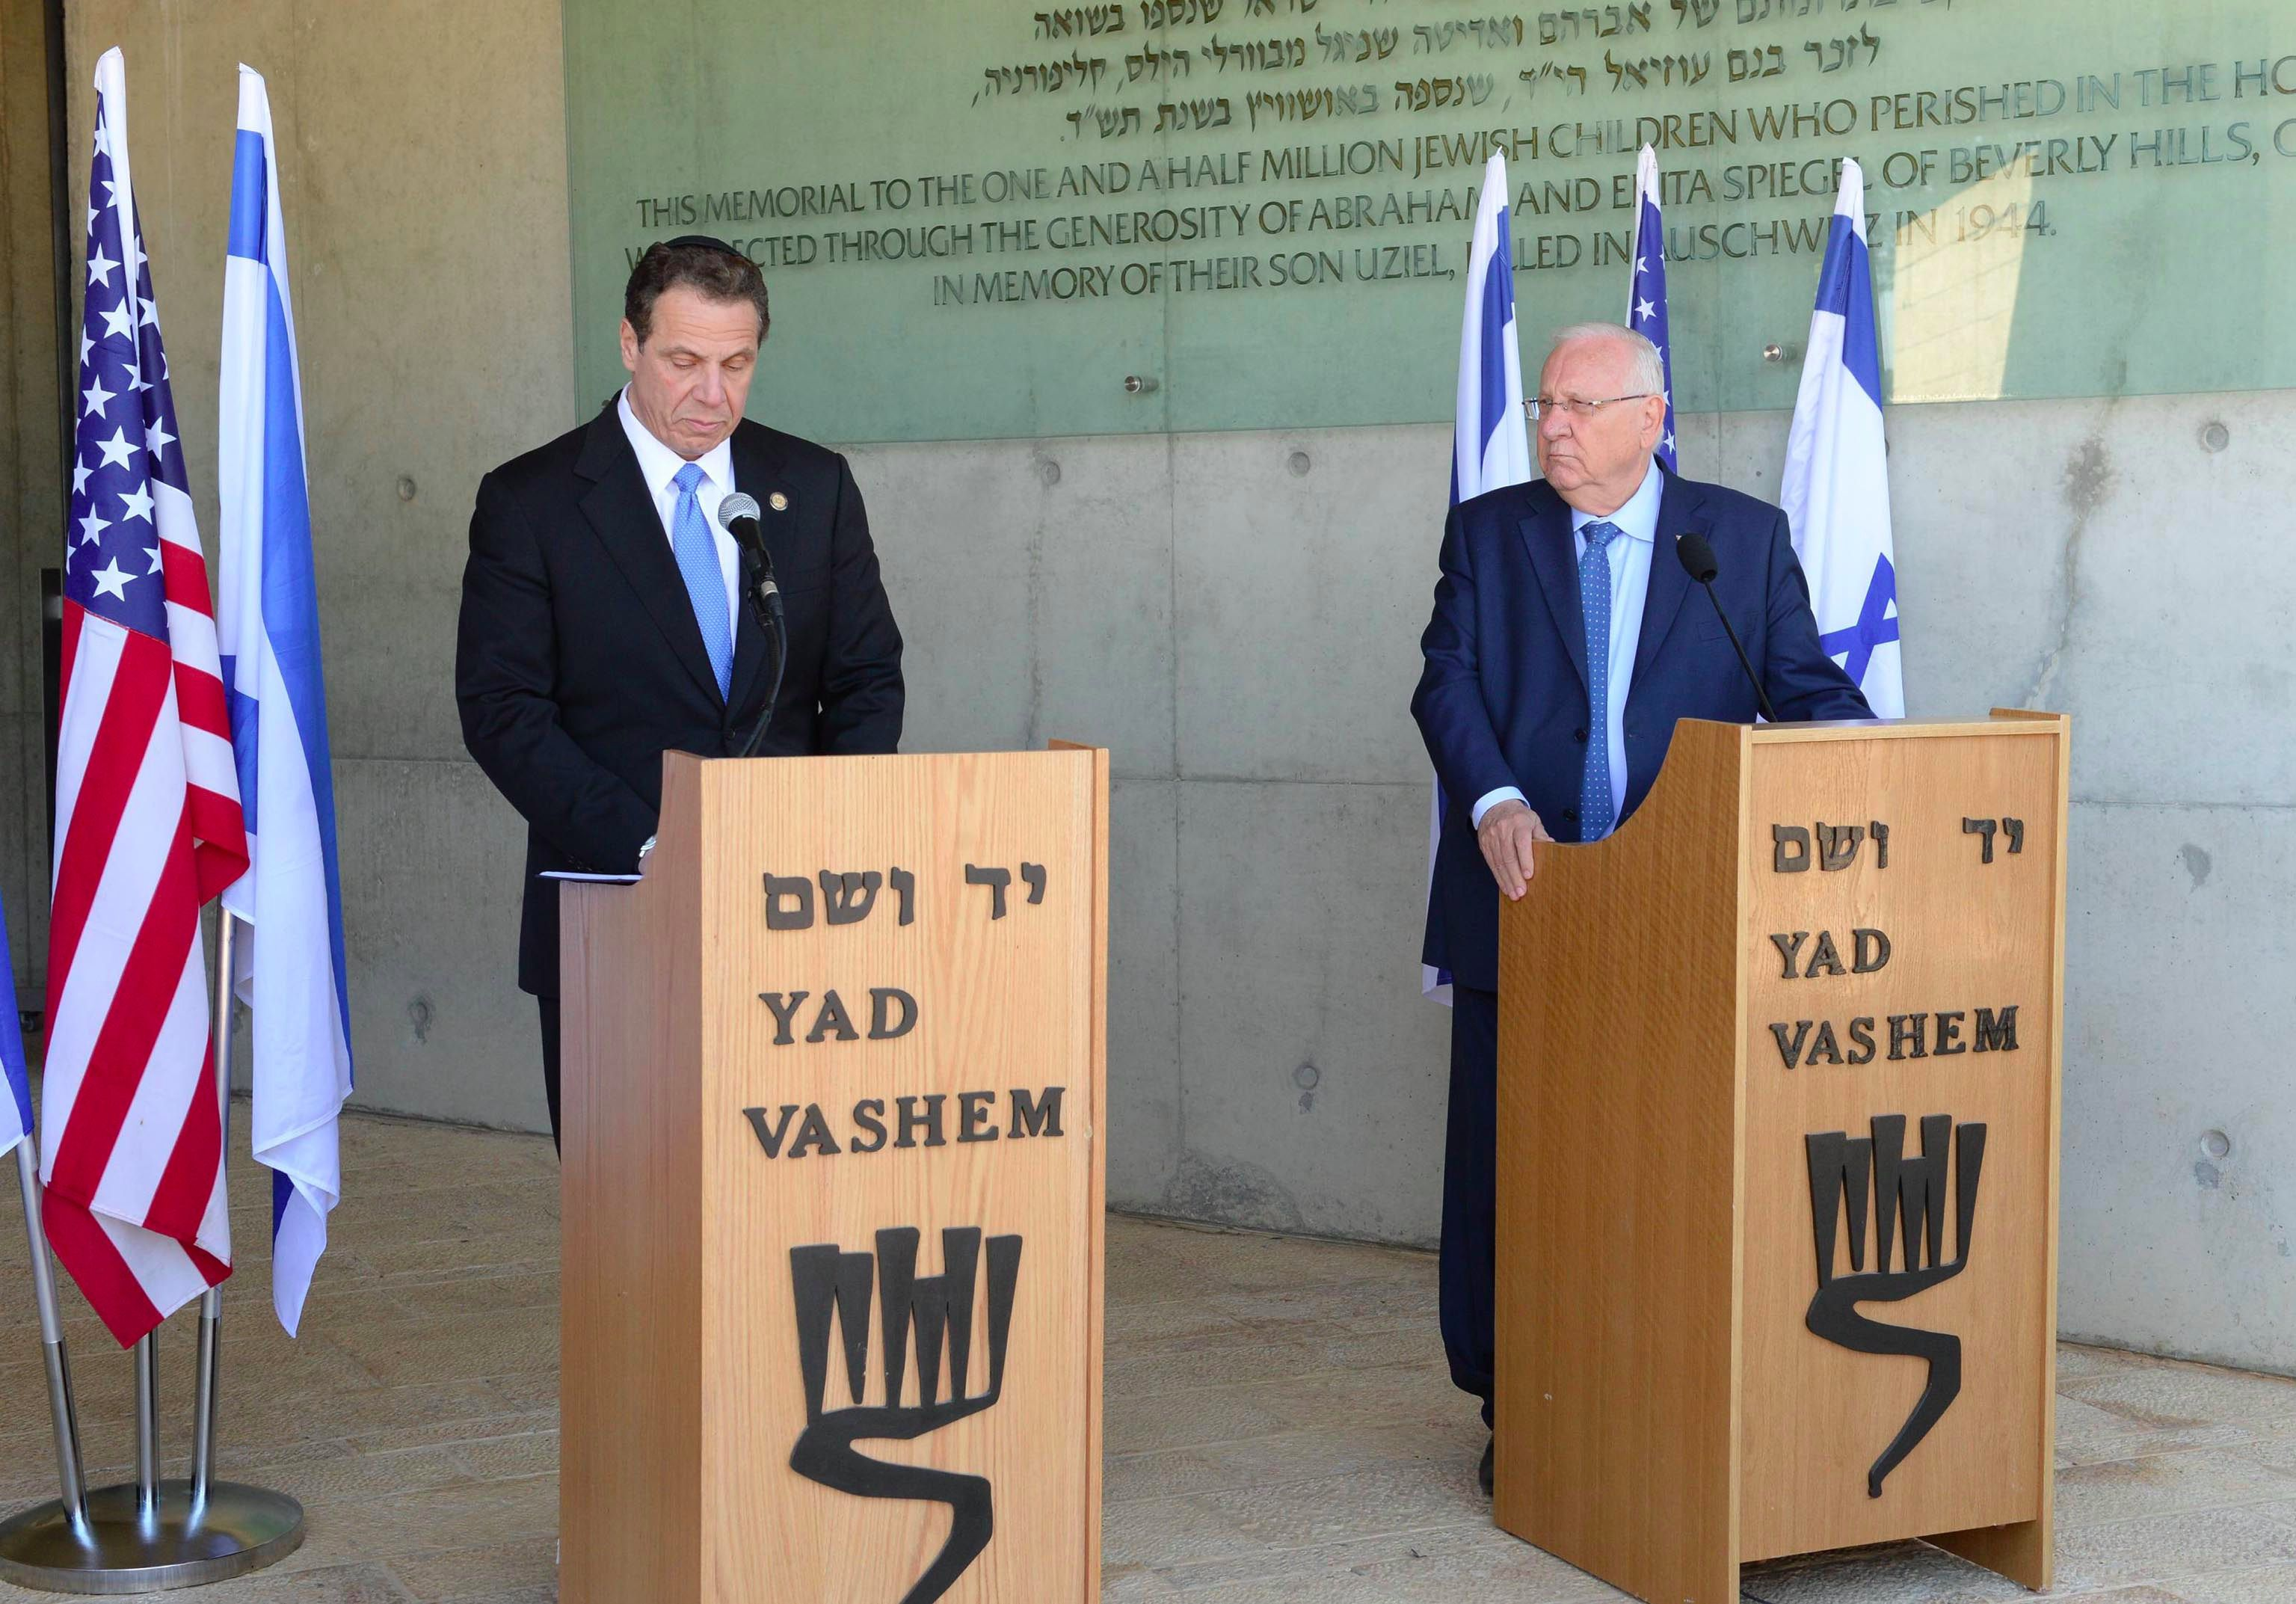 New York Governor Andrew Cuomo (left) and Israeli President Reuven Rivlin